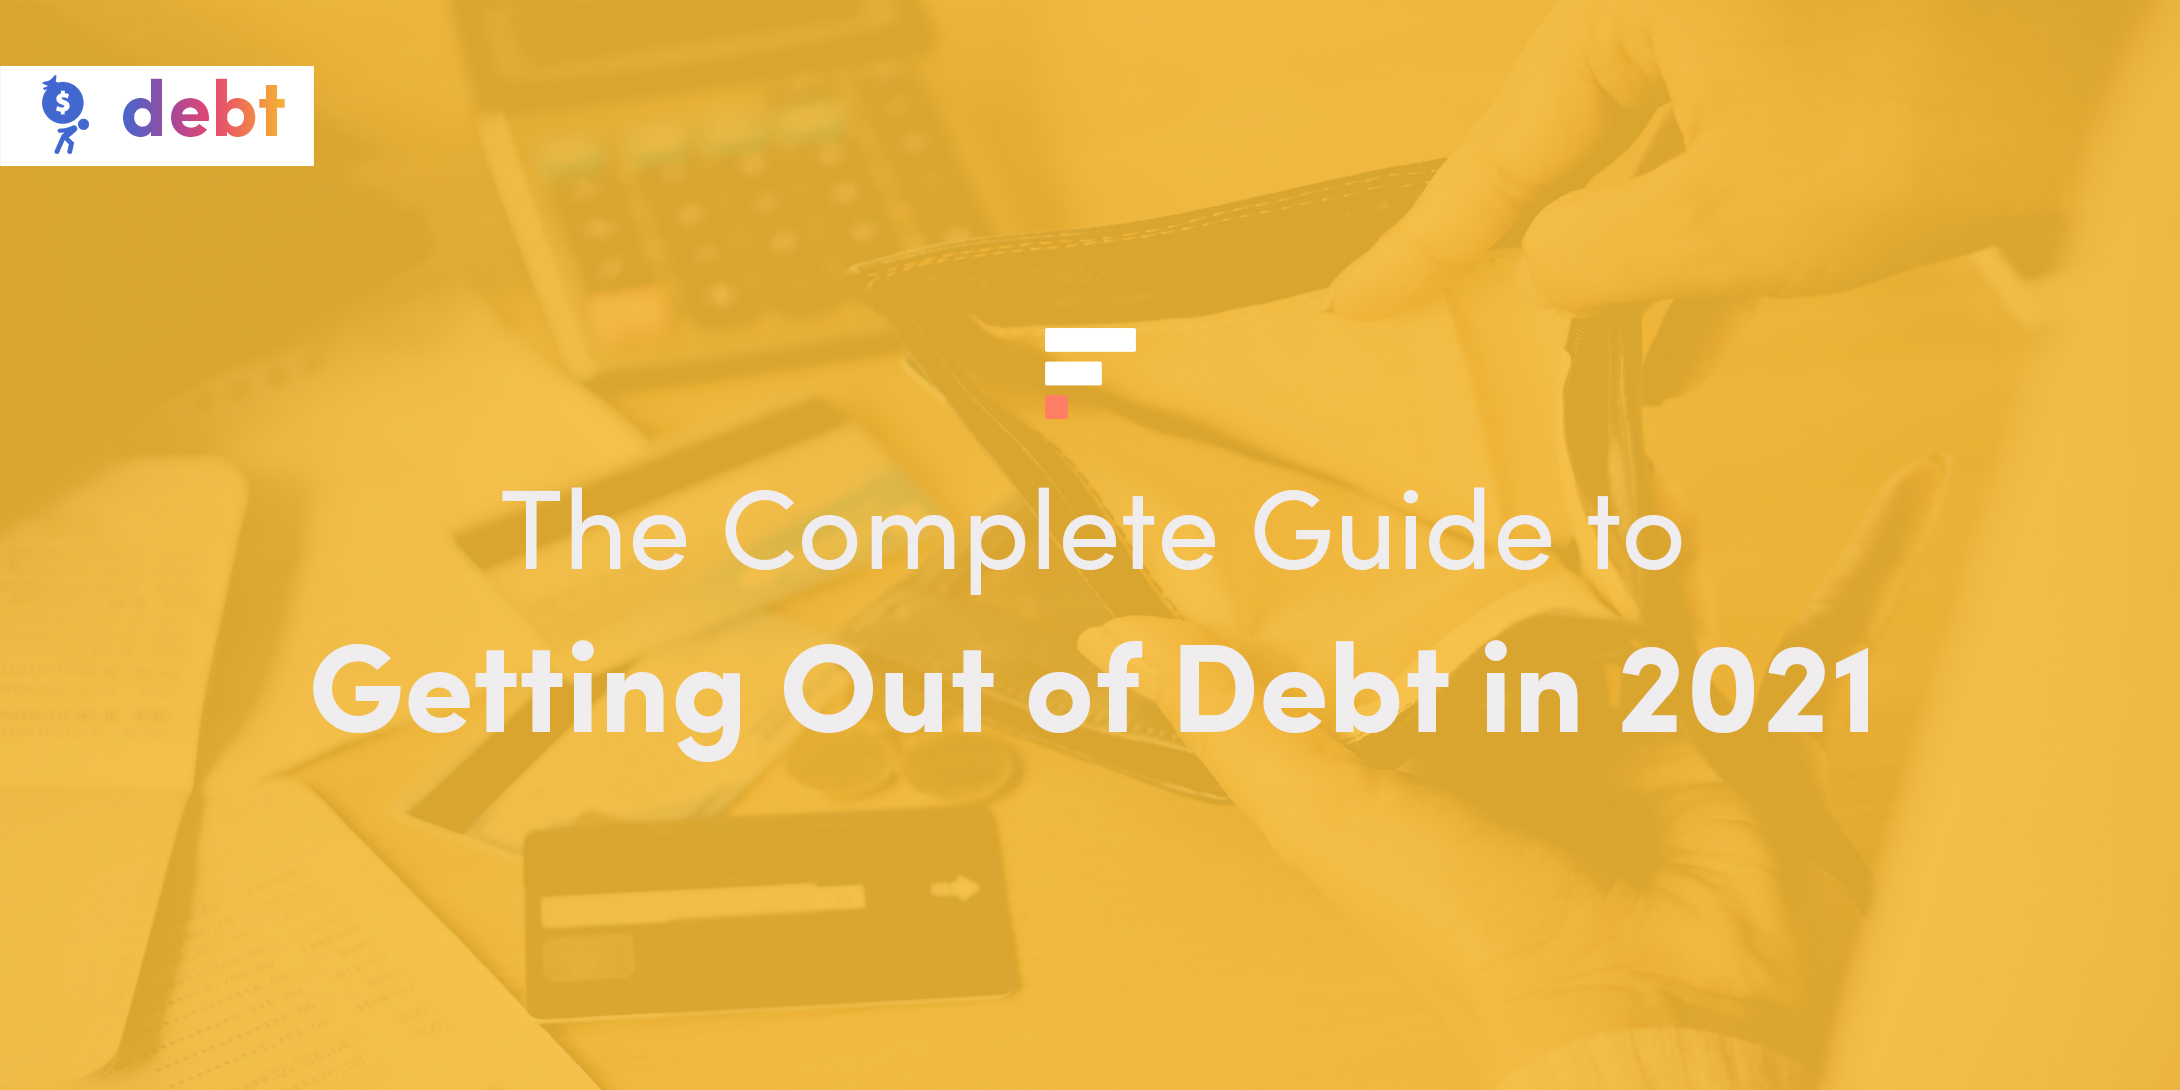 The Complete Guide to Getting Out of Debt in 2021